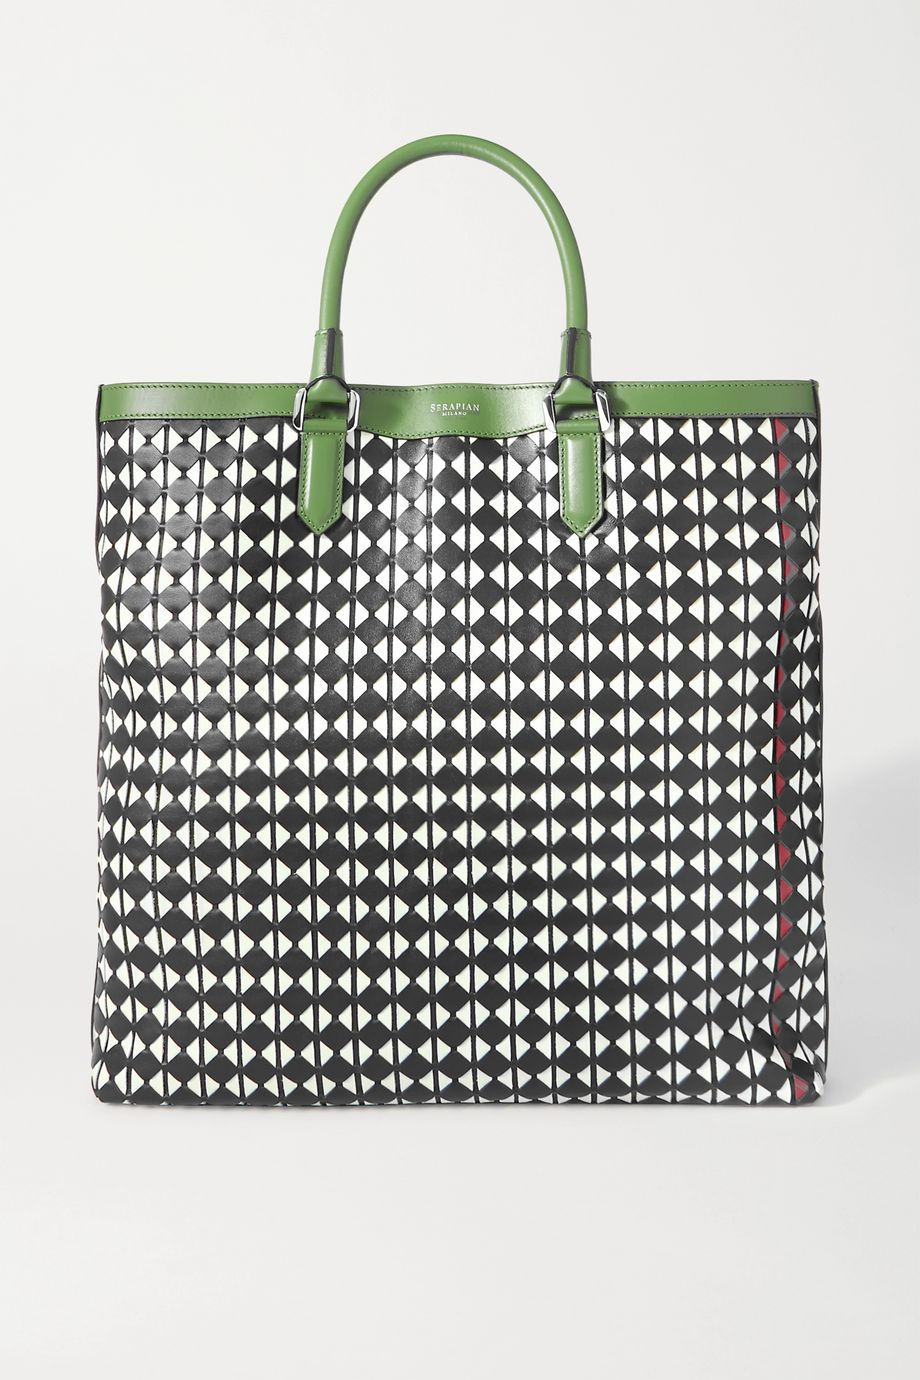 Serapian Vertical medium woven leather tote